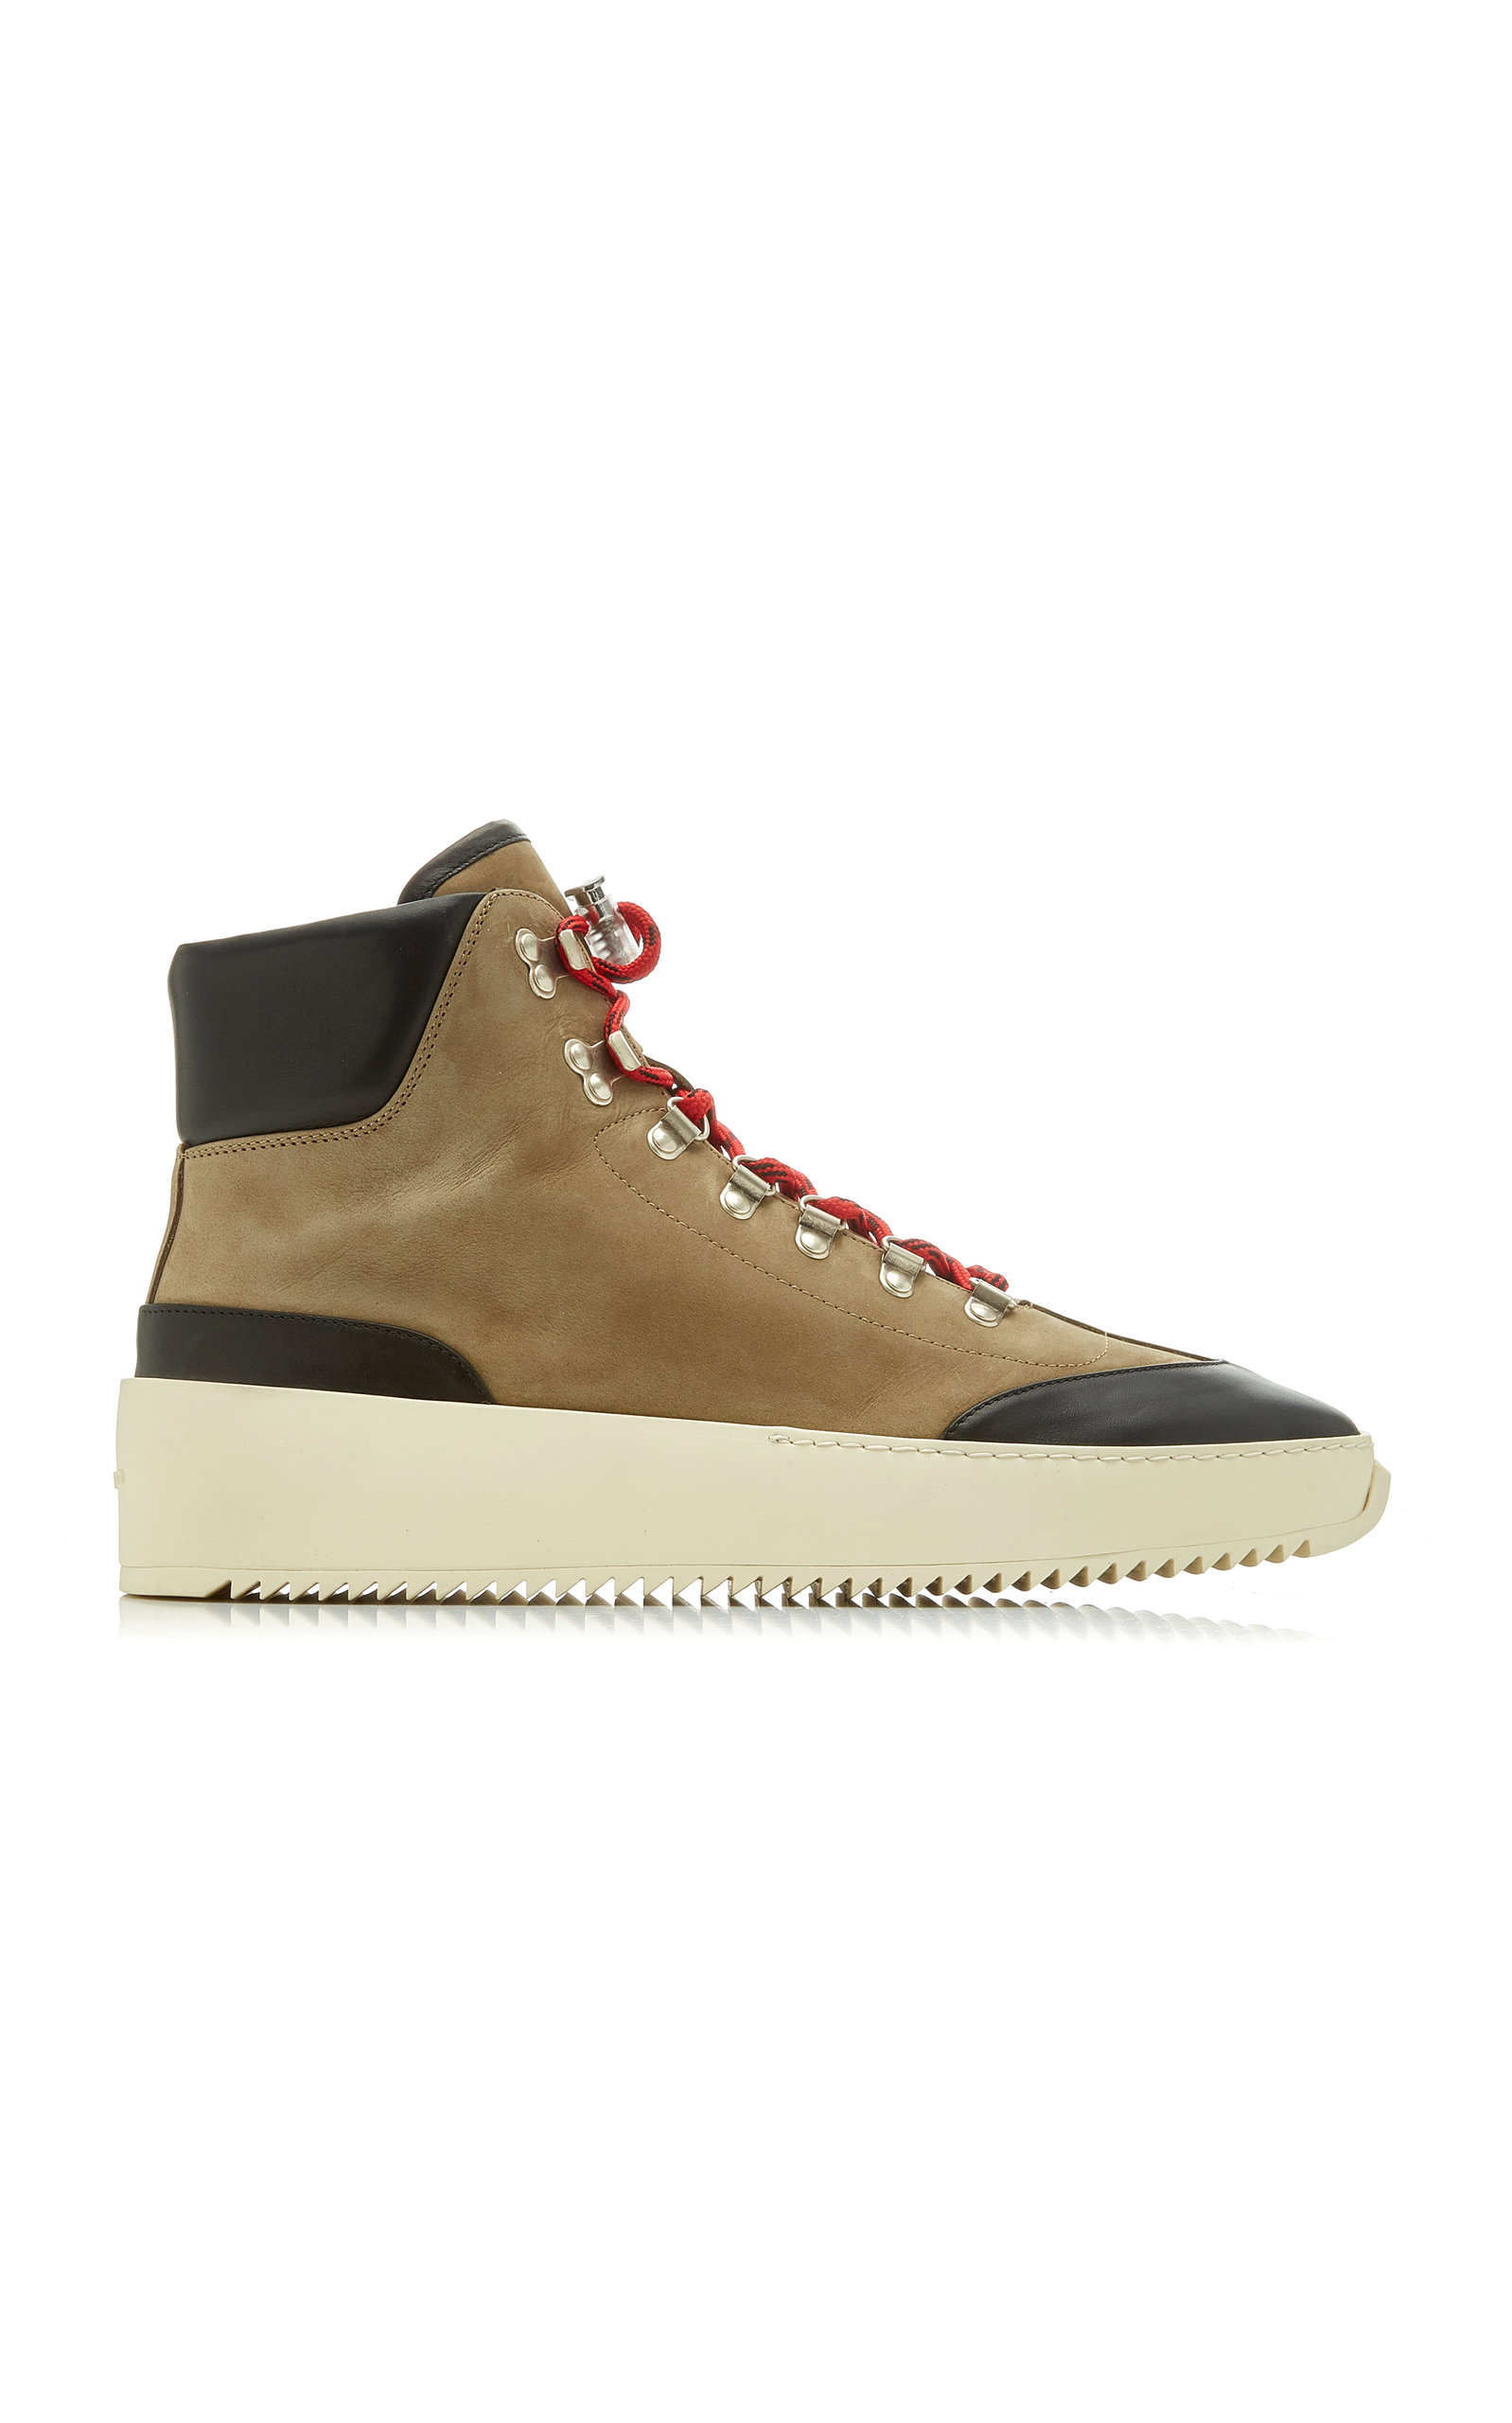 Fear Of God Sneakers 6TH COLLECTION HIKER SUEDE HIGH-TOP SNEAKERS